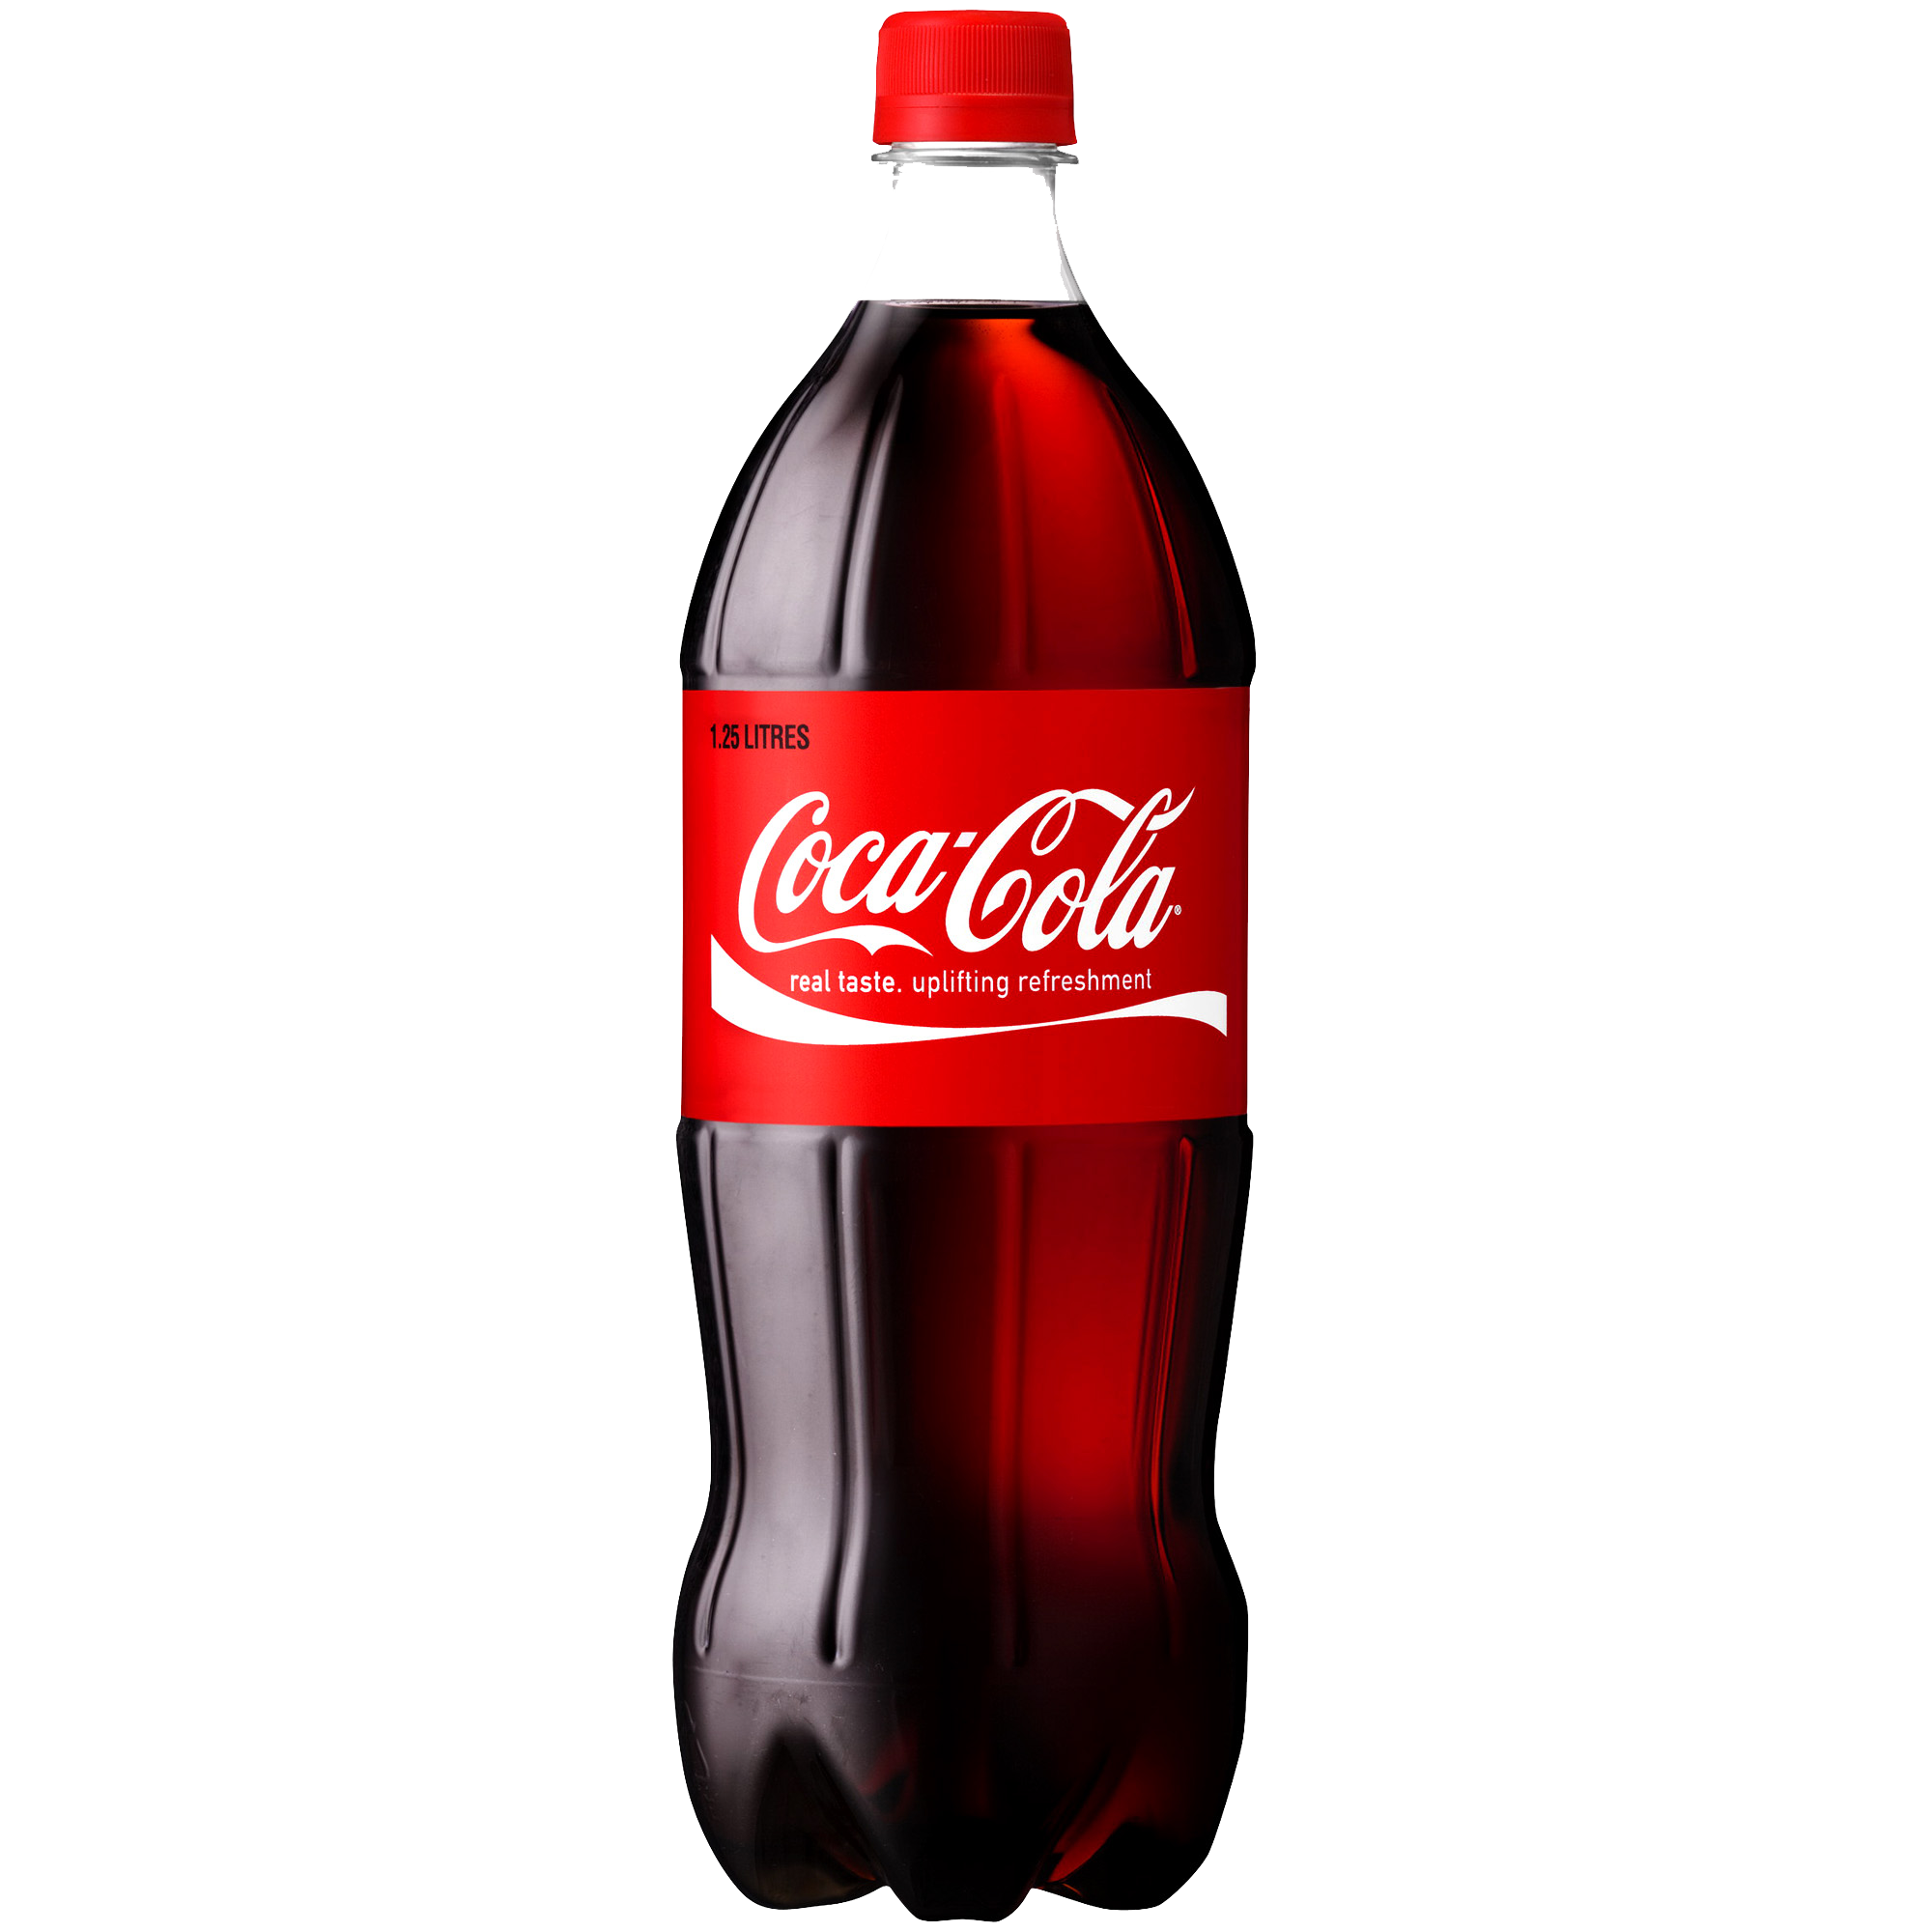 bottle Coca Cola PNG Transparent